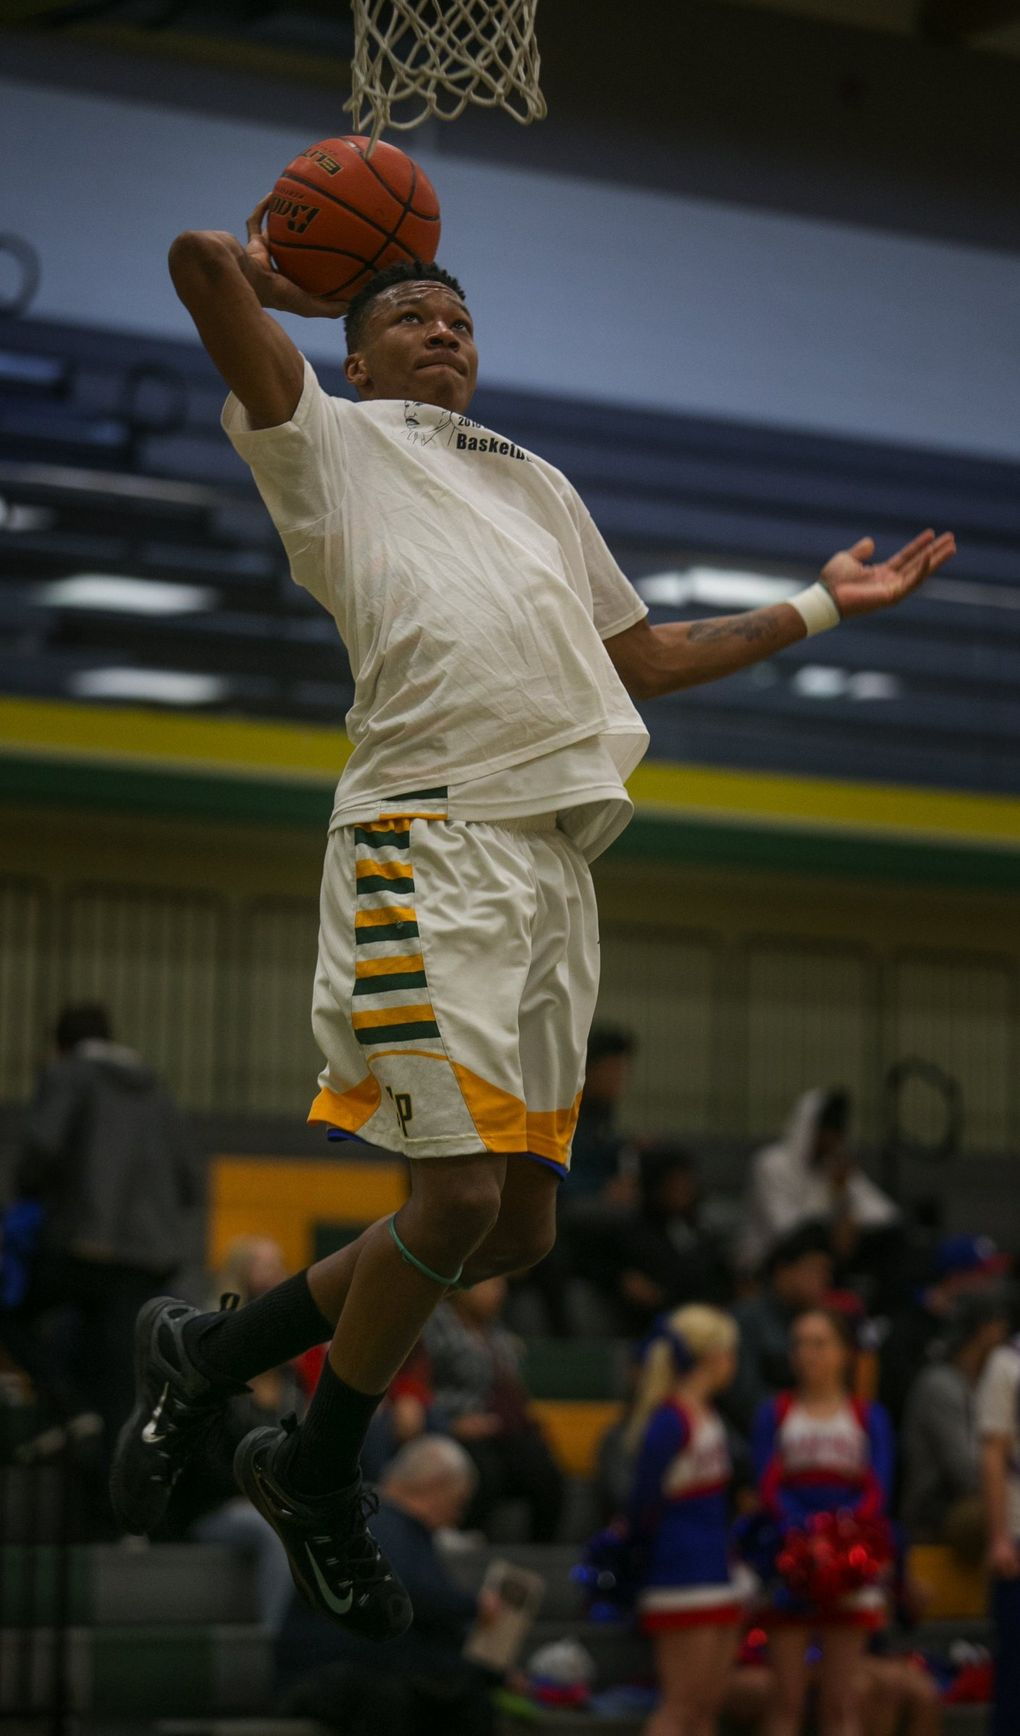 Clover Park High School basketball player Semaj Booker goes up for a basket before playing in the Clover Park Warrior's playoff game against  the Washington Patriots  at Foss High School in Tacoma, WA, Monday, February 15, 2016. (Ellen M. Banner / The Seattle Times)